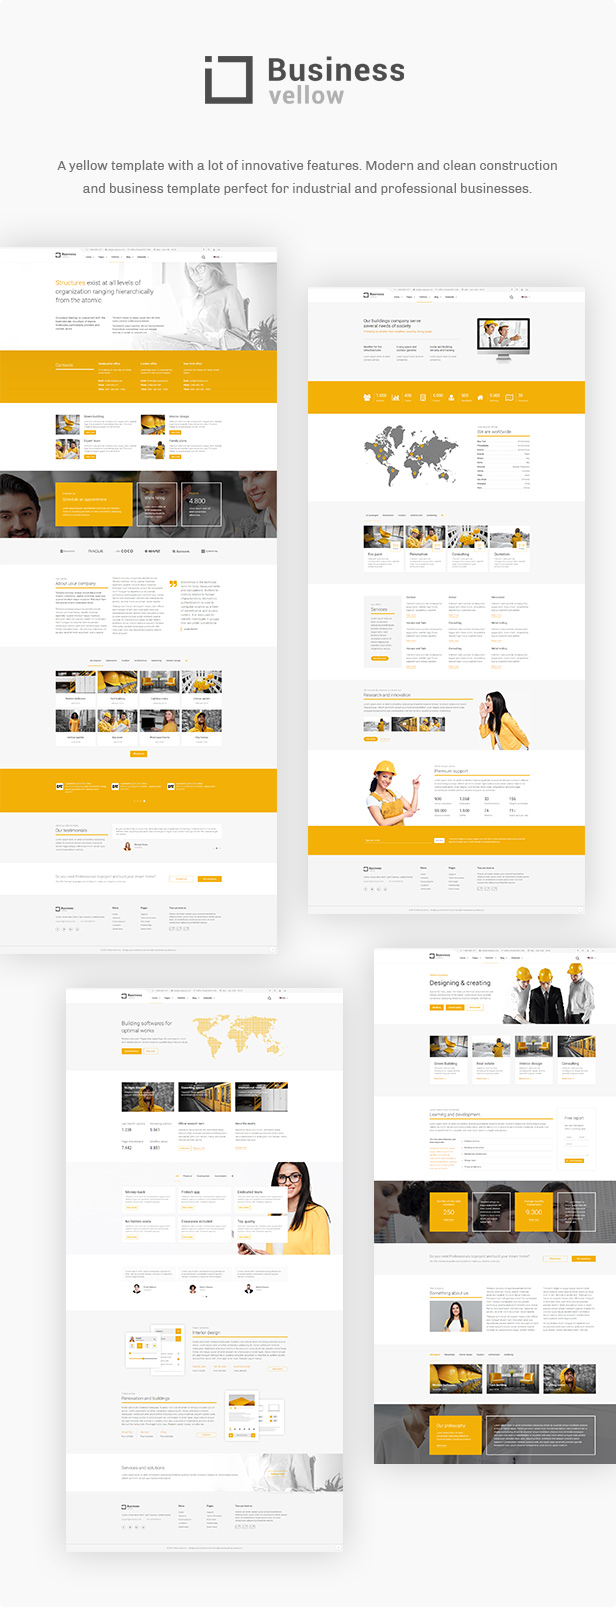 Yellow Business - Construction Template - 2